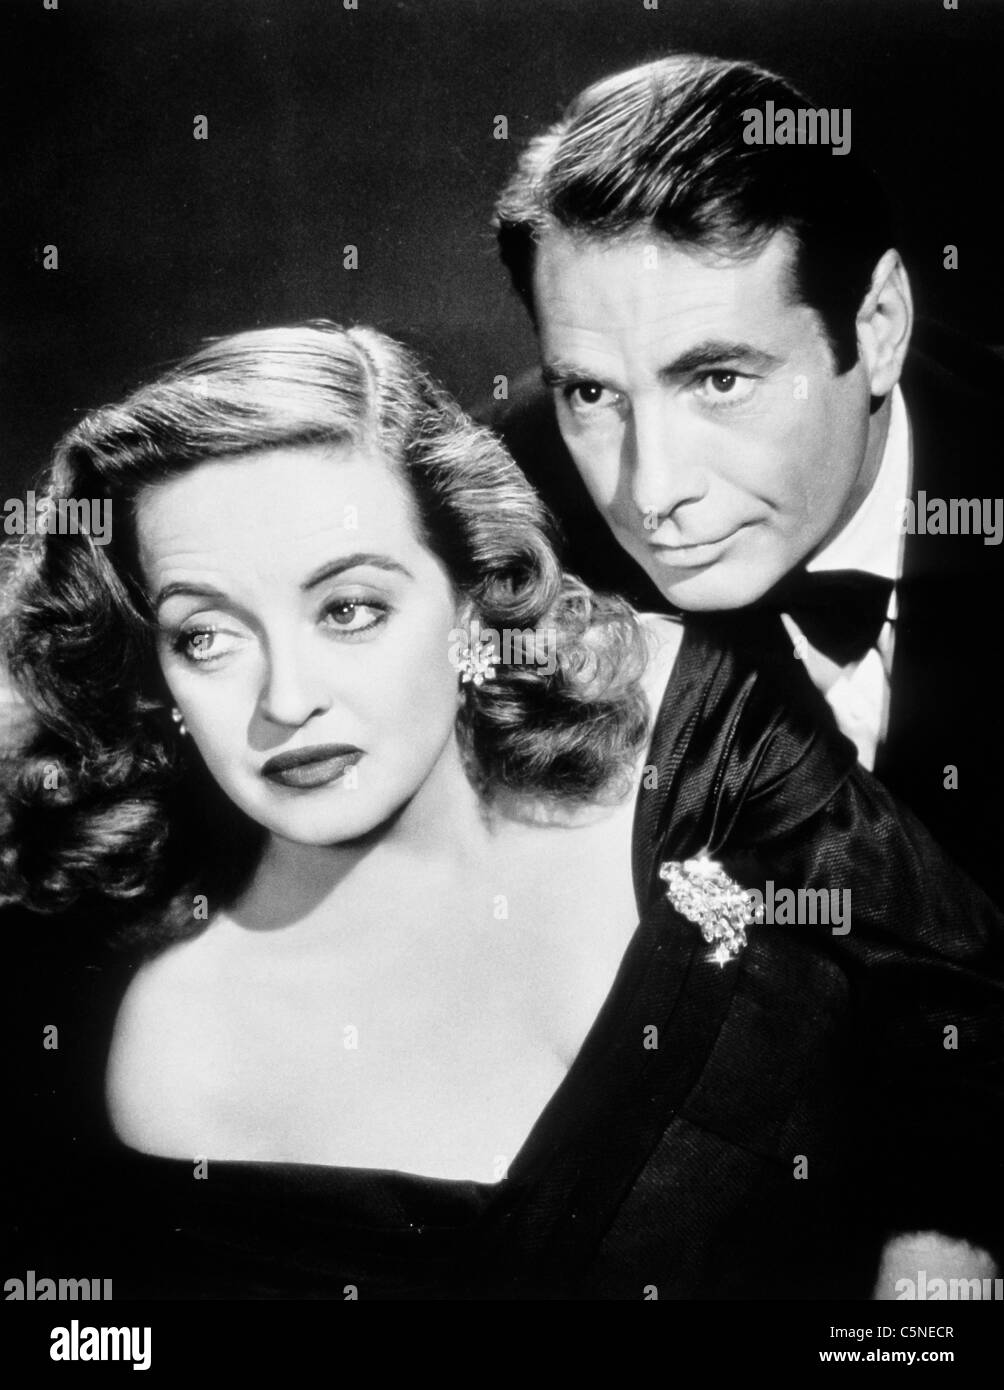 Bette Davis, Gary Merrill in All About Eve 1950 - Stock Image